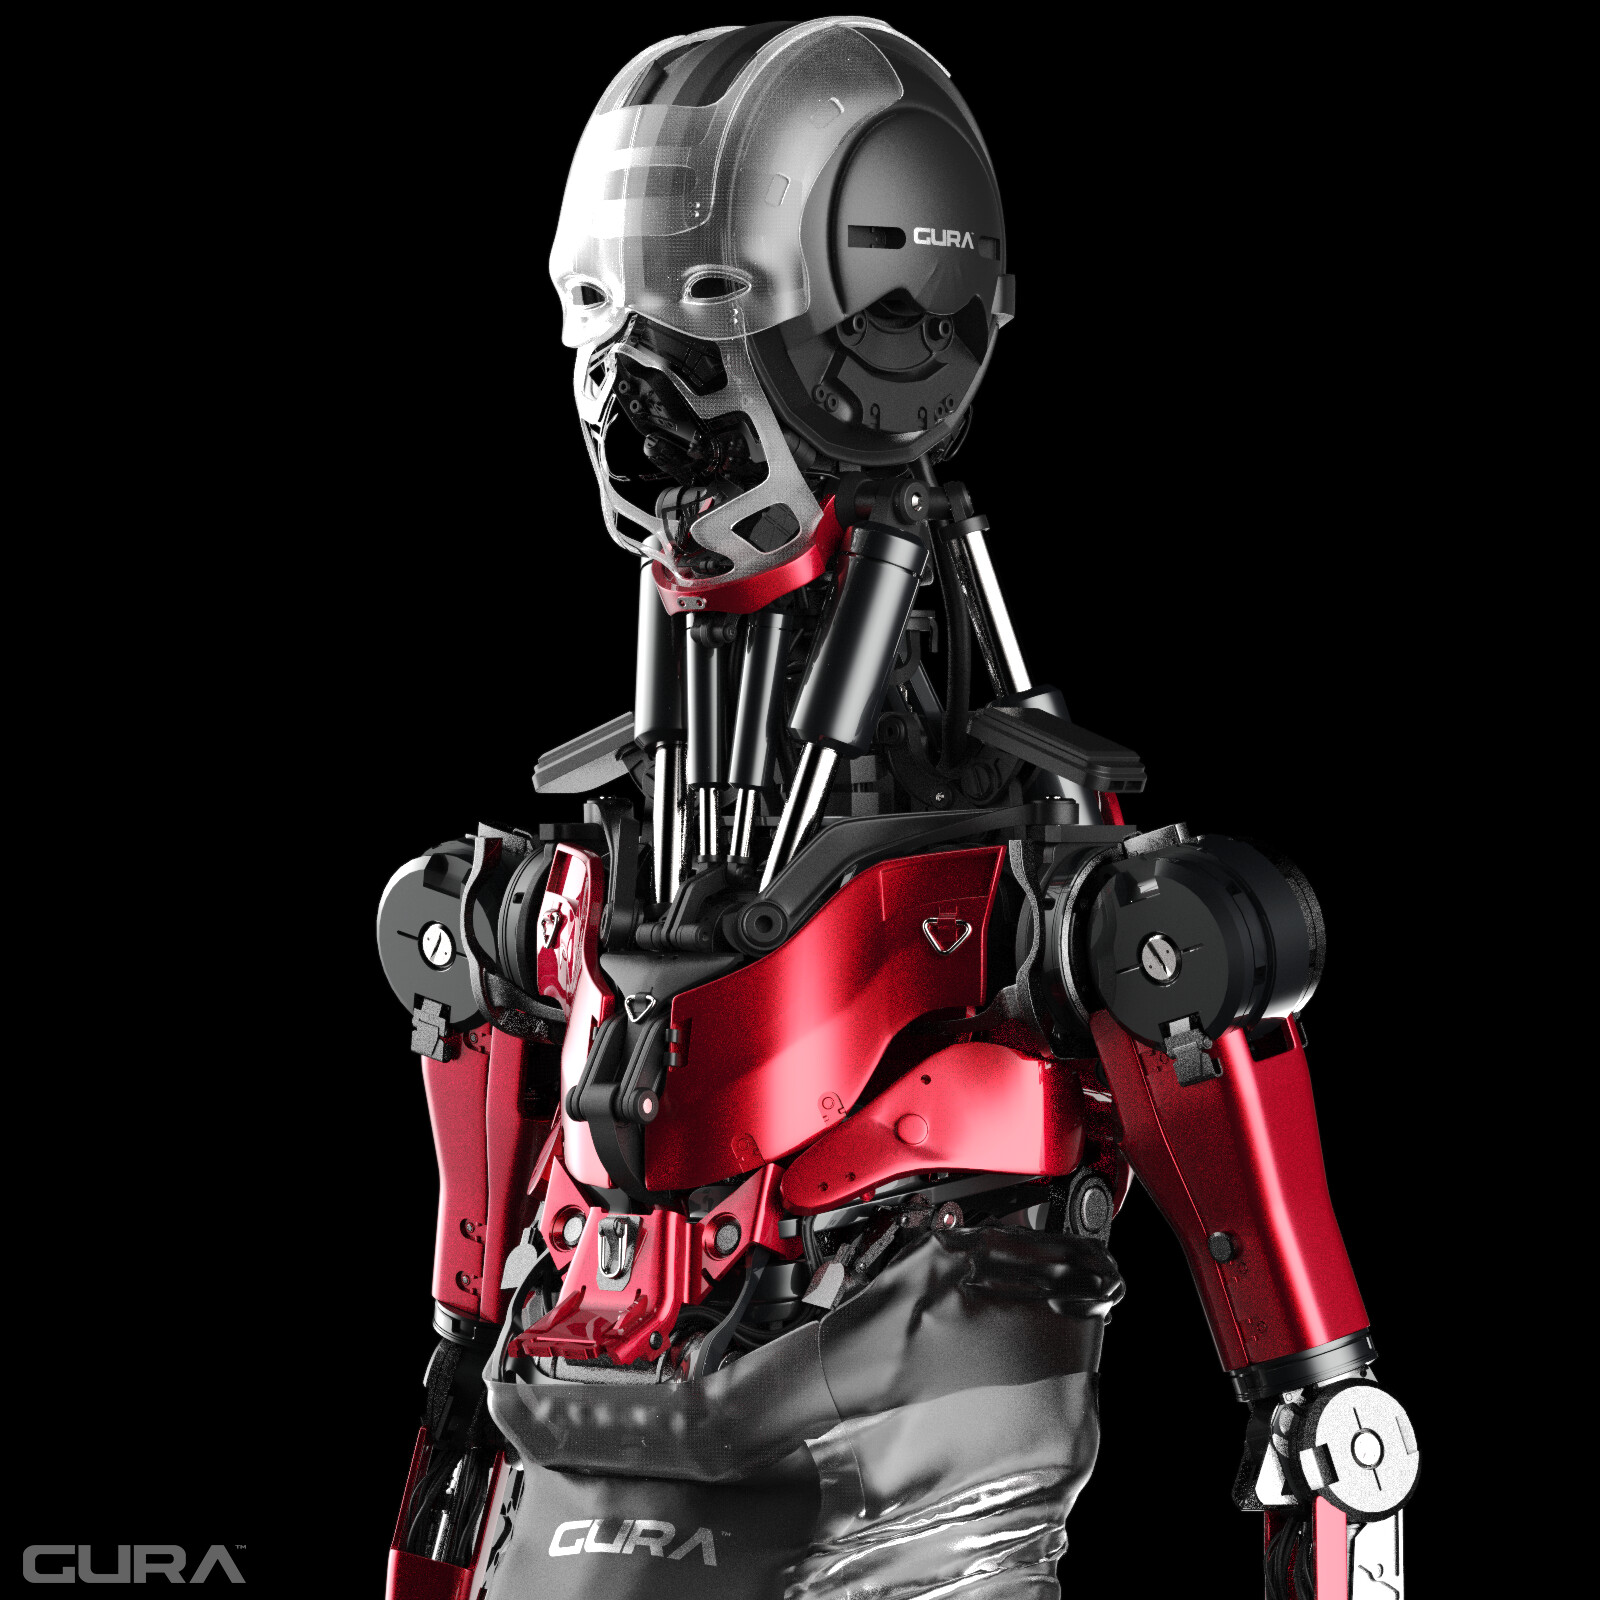 Edon guraziu gura droid red a